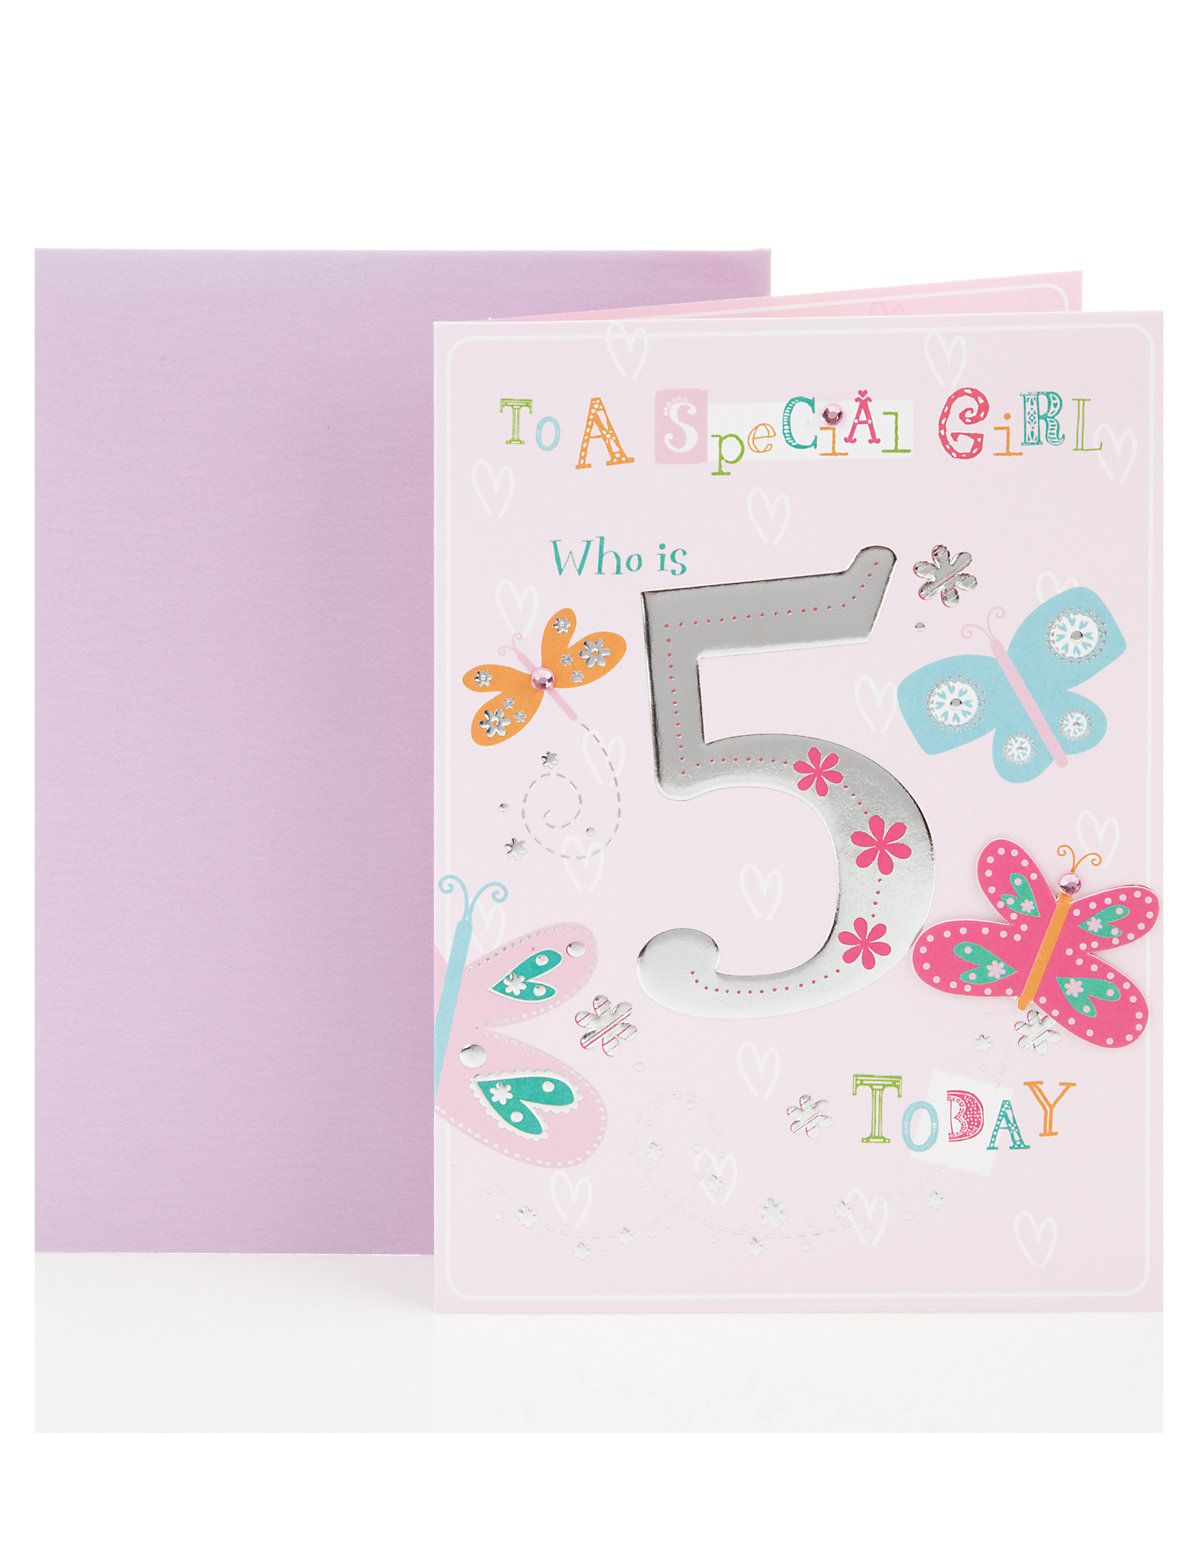 Special girl age 5 birthday greetings card ms cards special girl age 5 birthday greetings card ms kristyandbryce Image collections